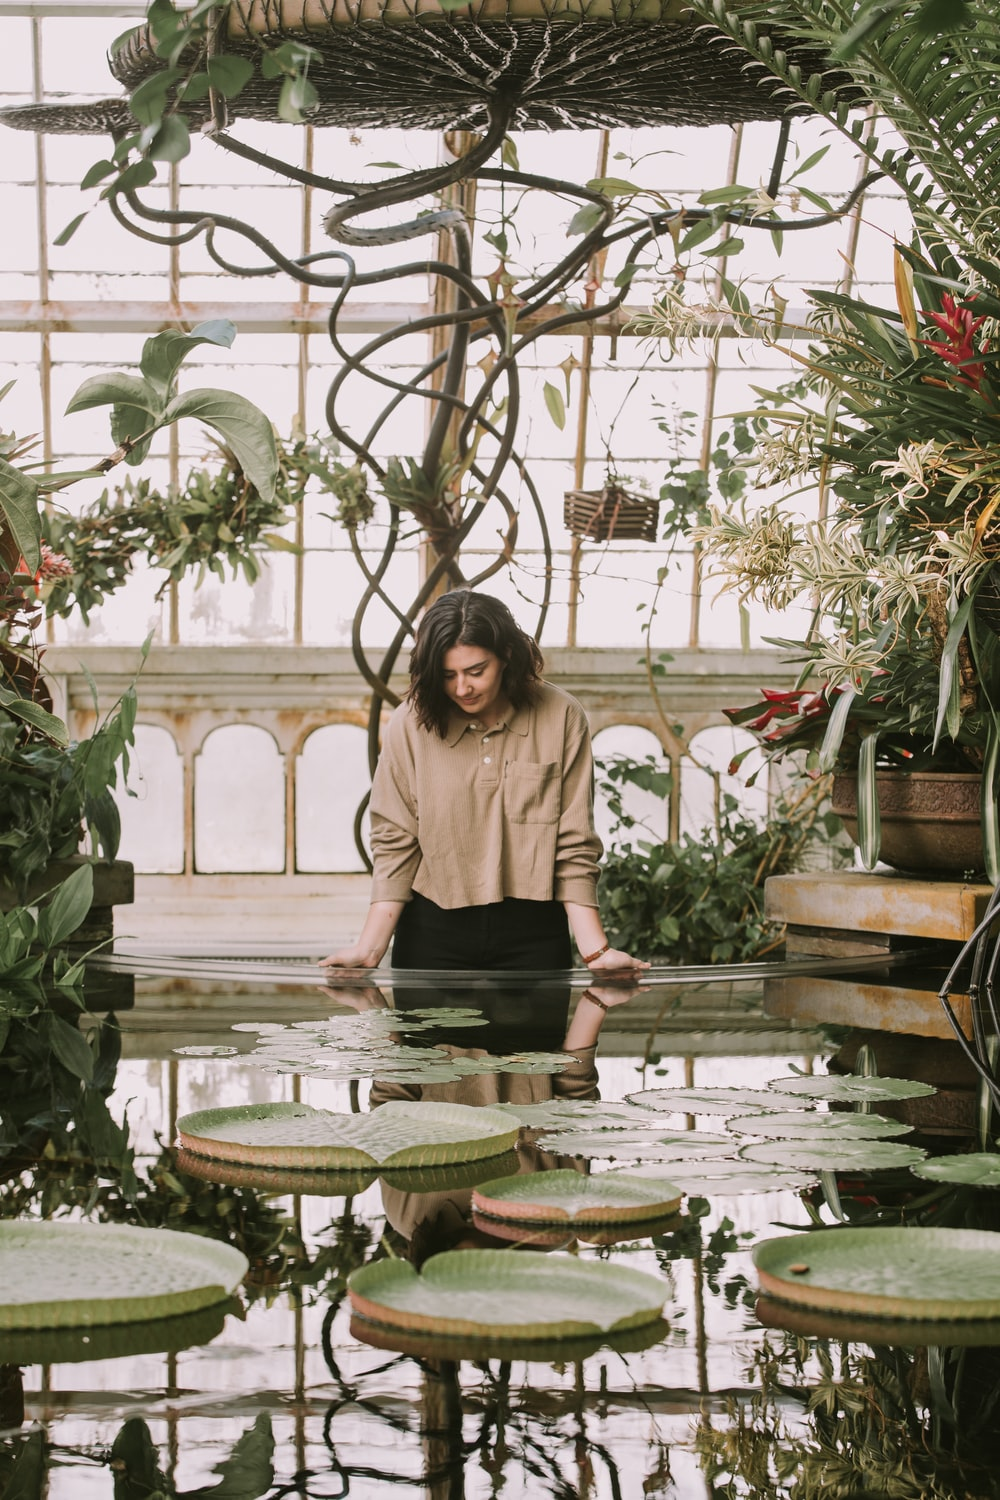 standing woman leaning on fountain with lily pads